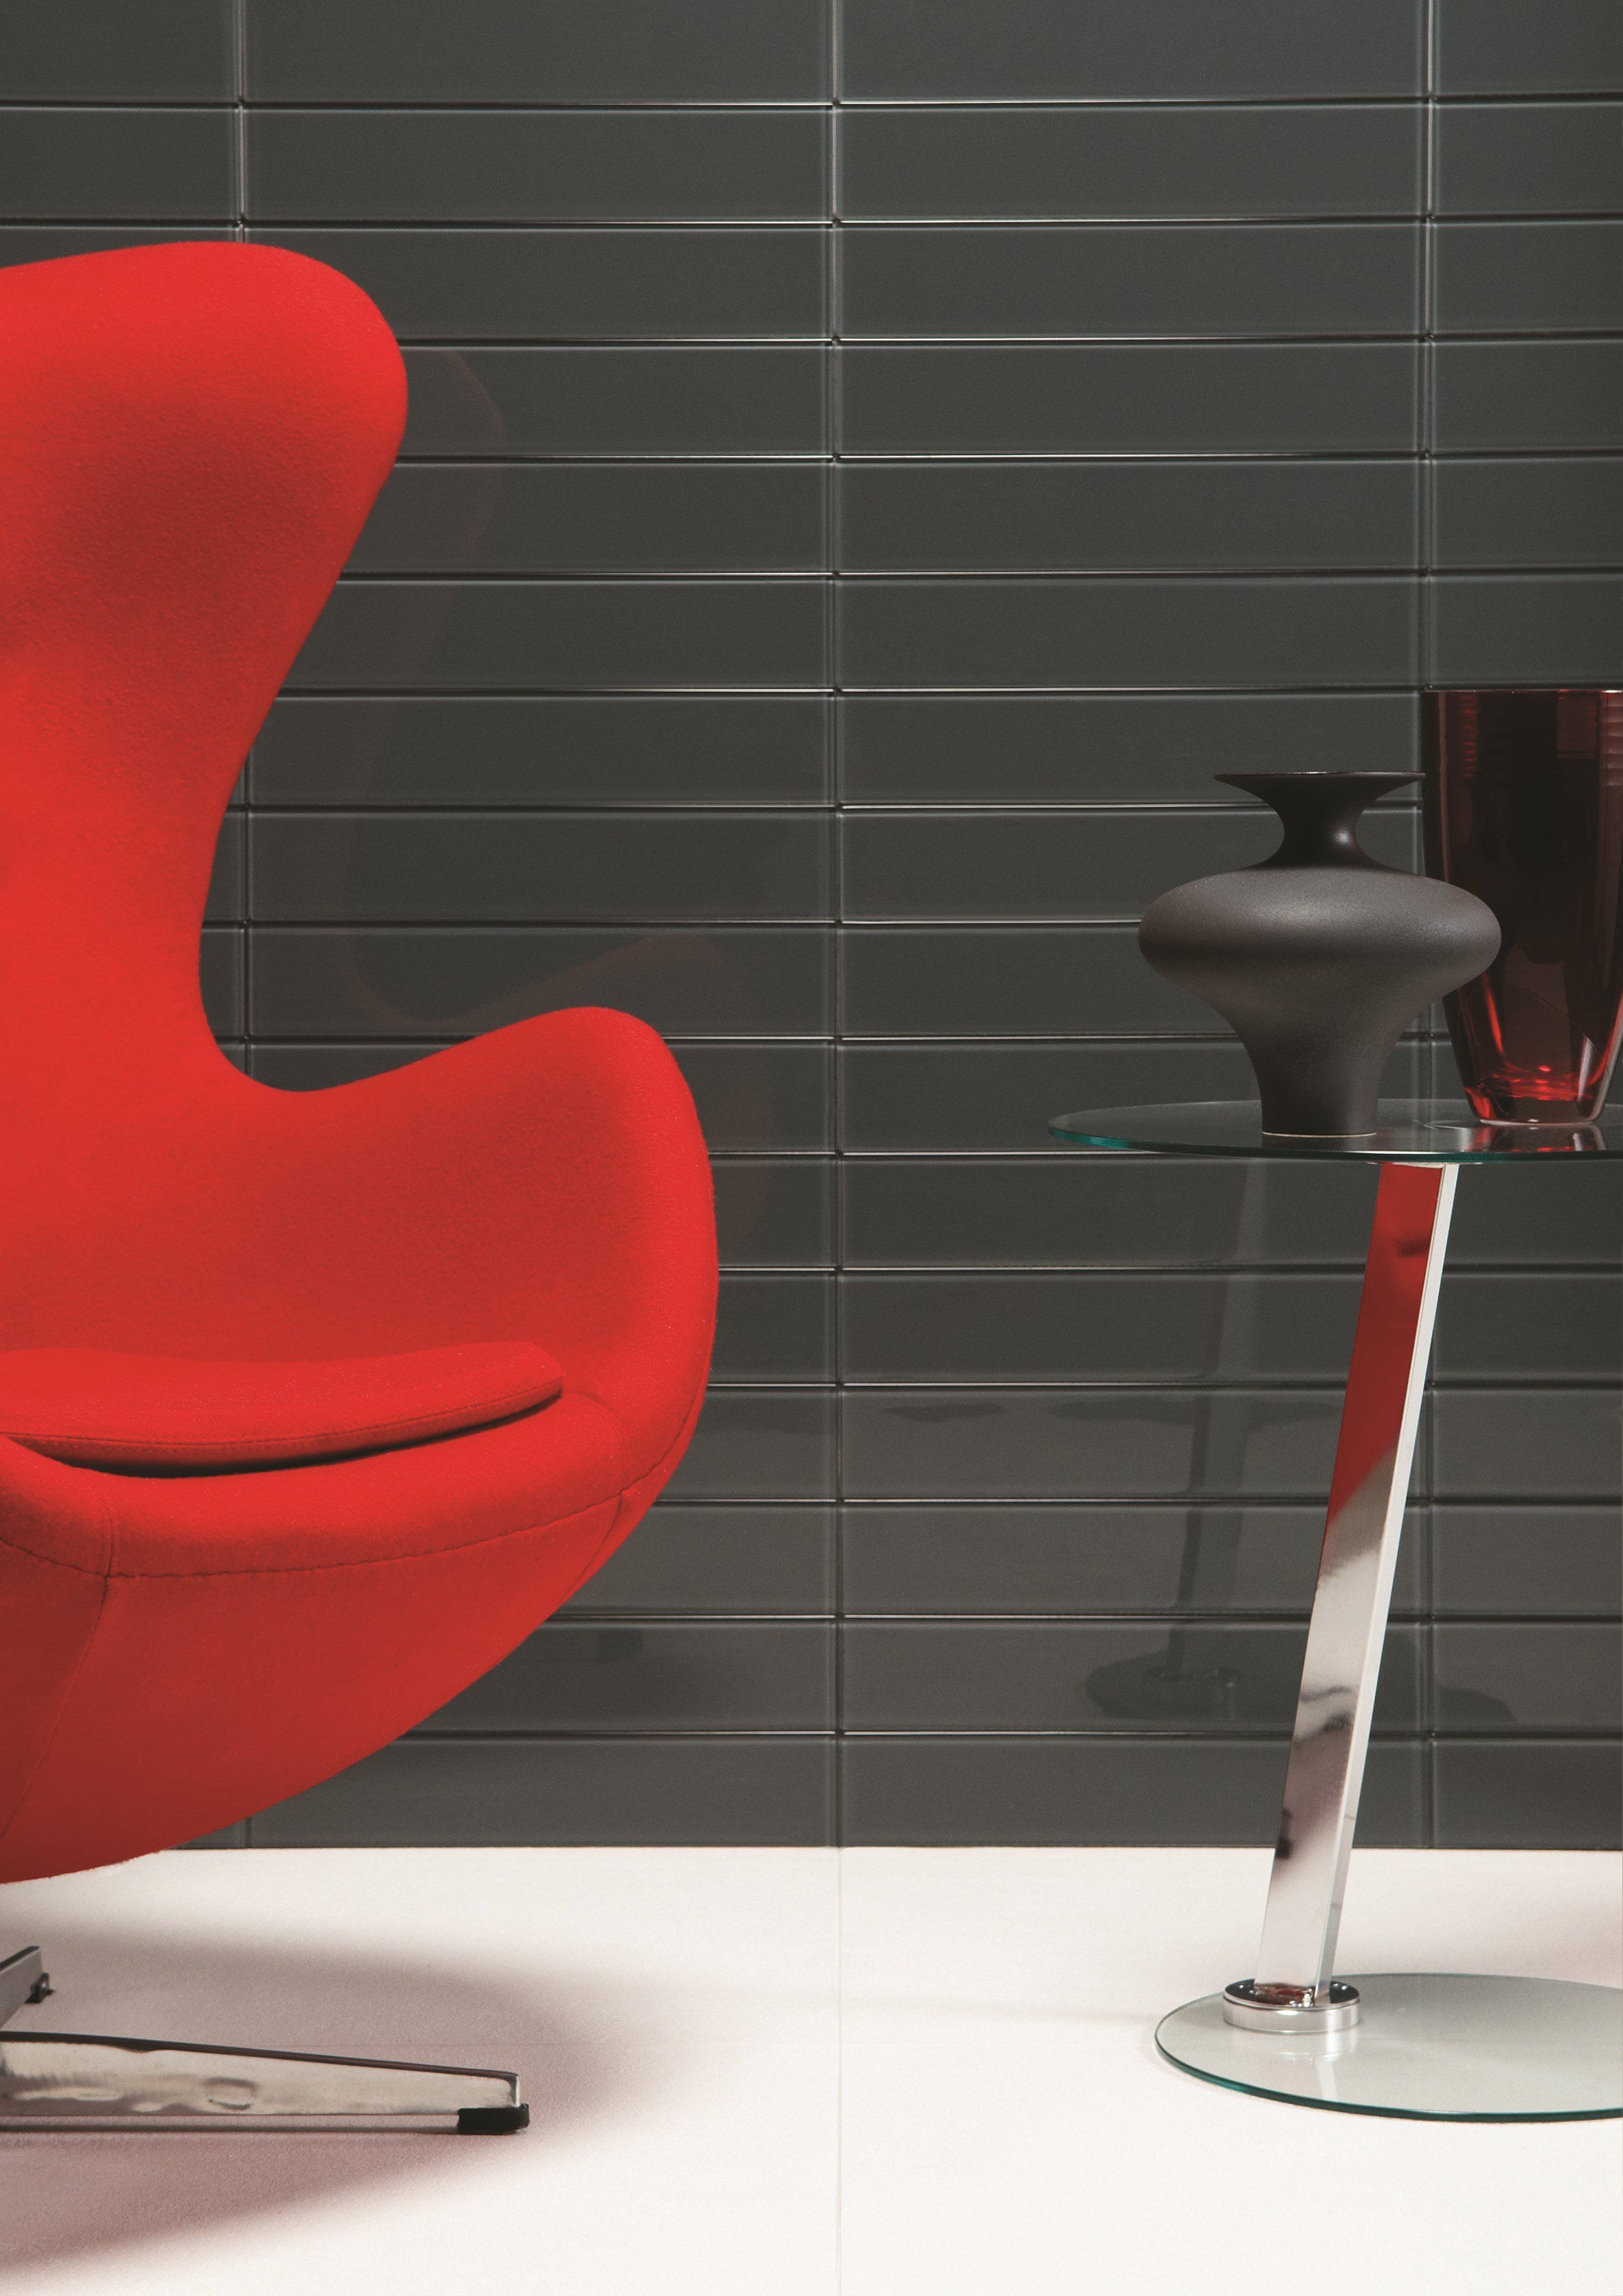 Understated And Sophisticated Clear Glass Tiles Look Great Against Bright  Red   Avon From The Glassworks